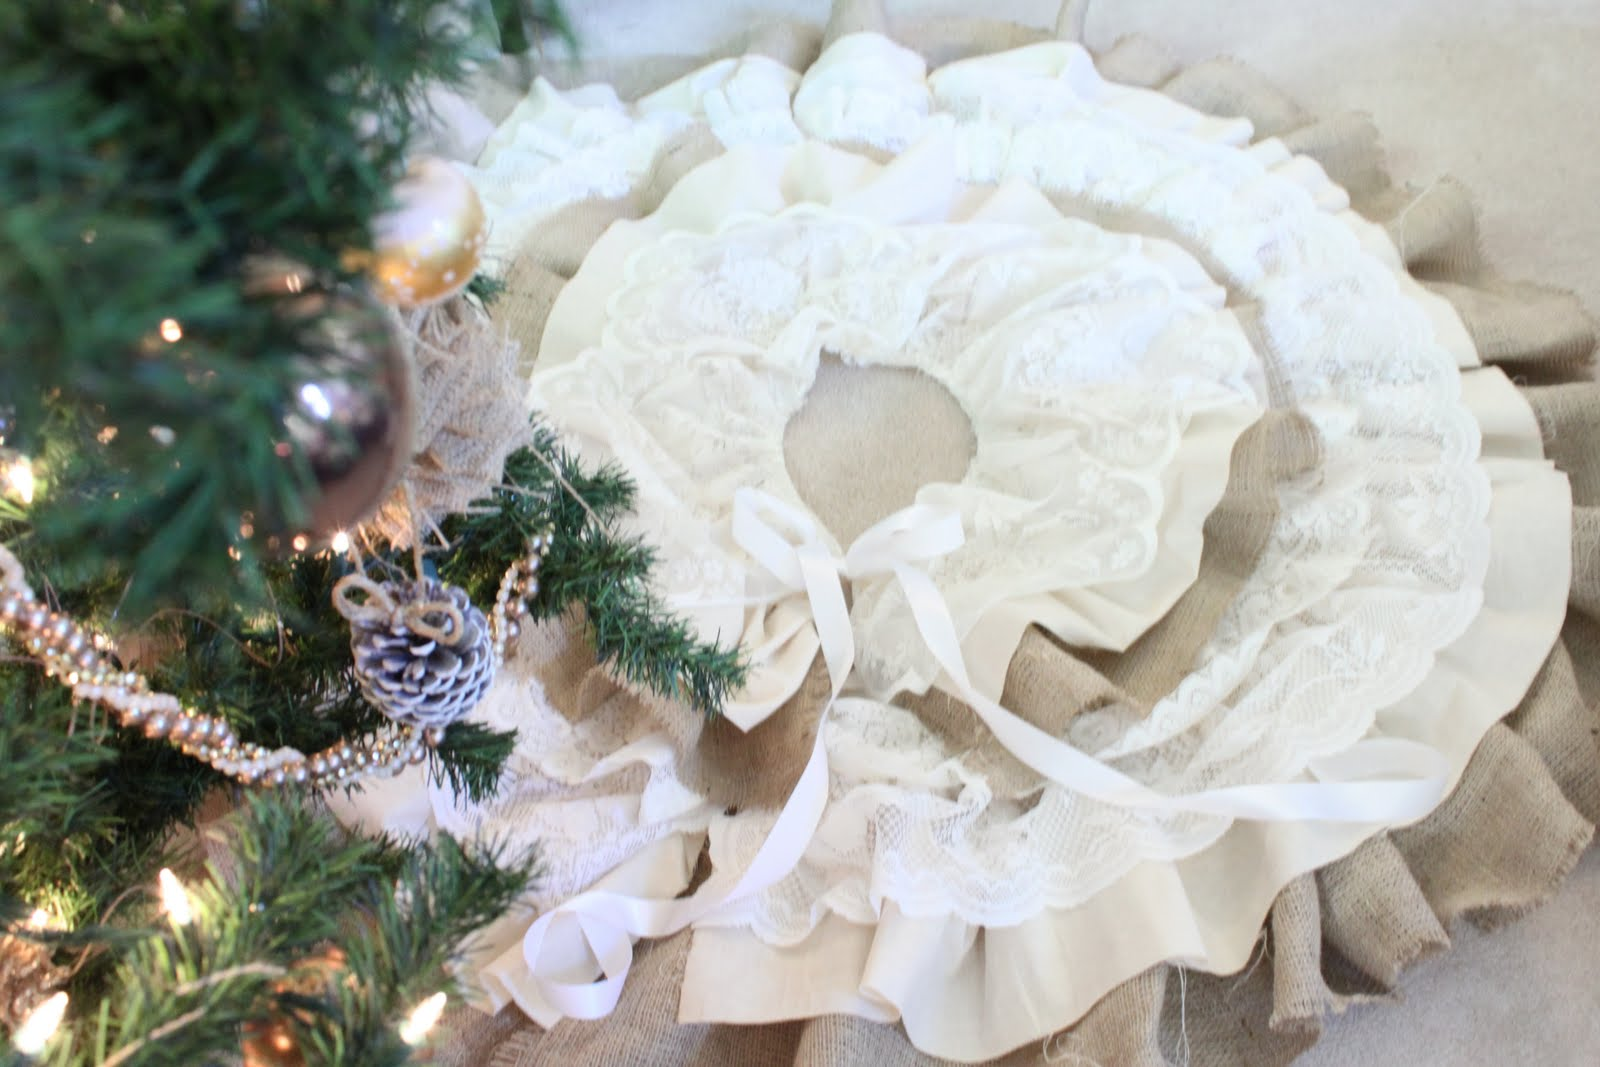 Do it yourself divas diy burlap and lace christmas tree skirt a perfect blend of lace burlap and muslin come together to create this one of a kind christmas tree skirt solutioingenieria Image collections